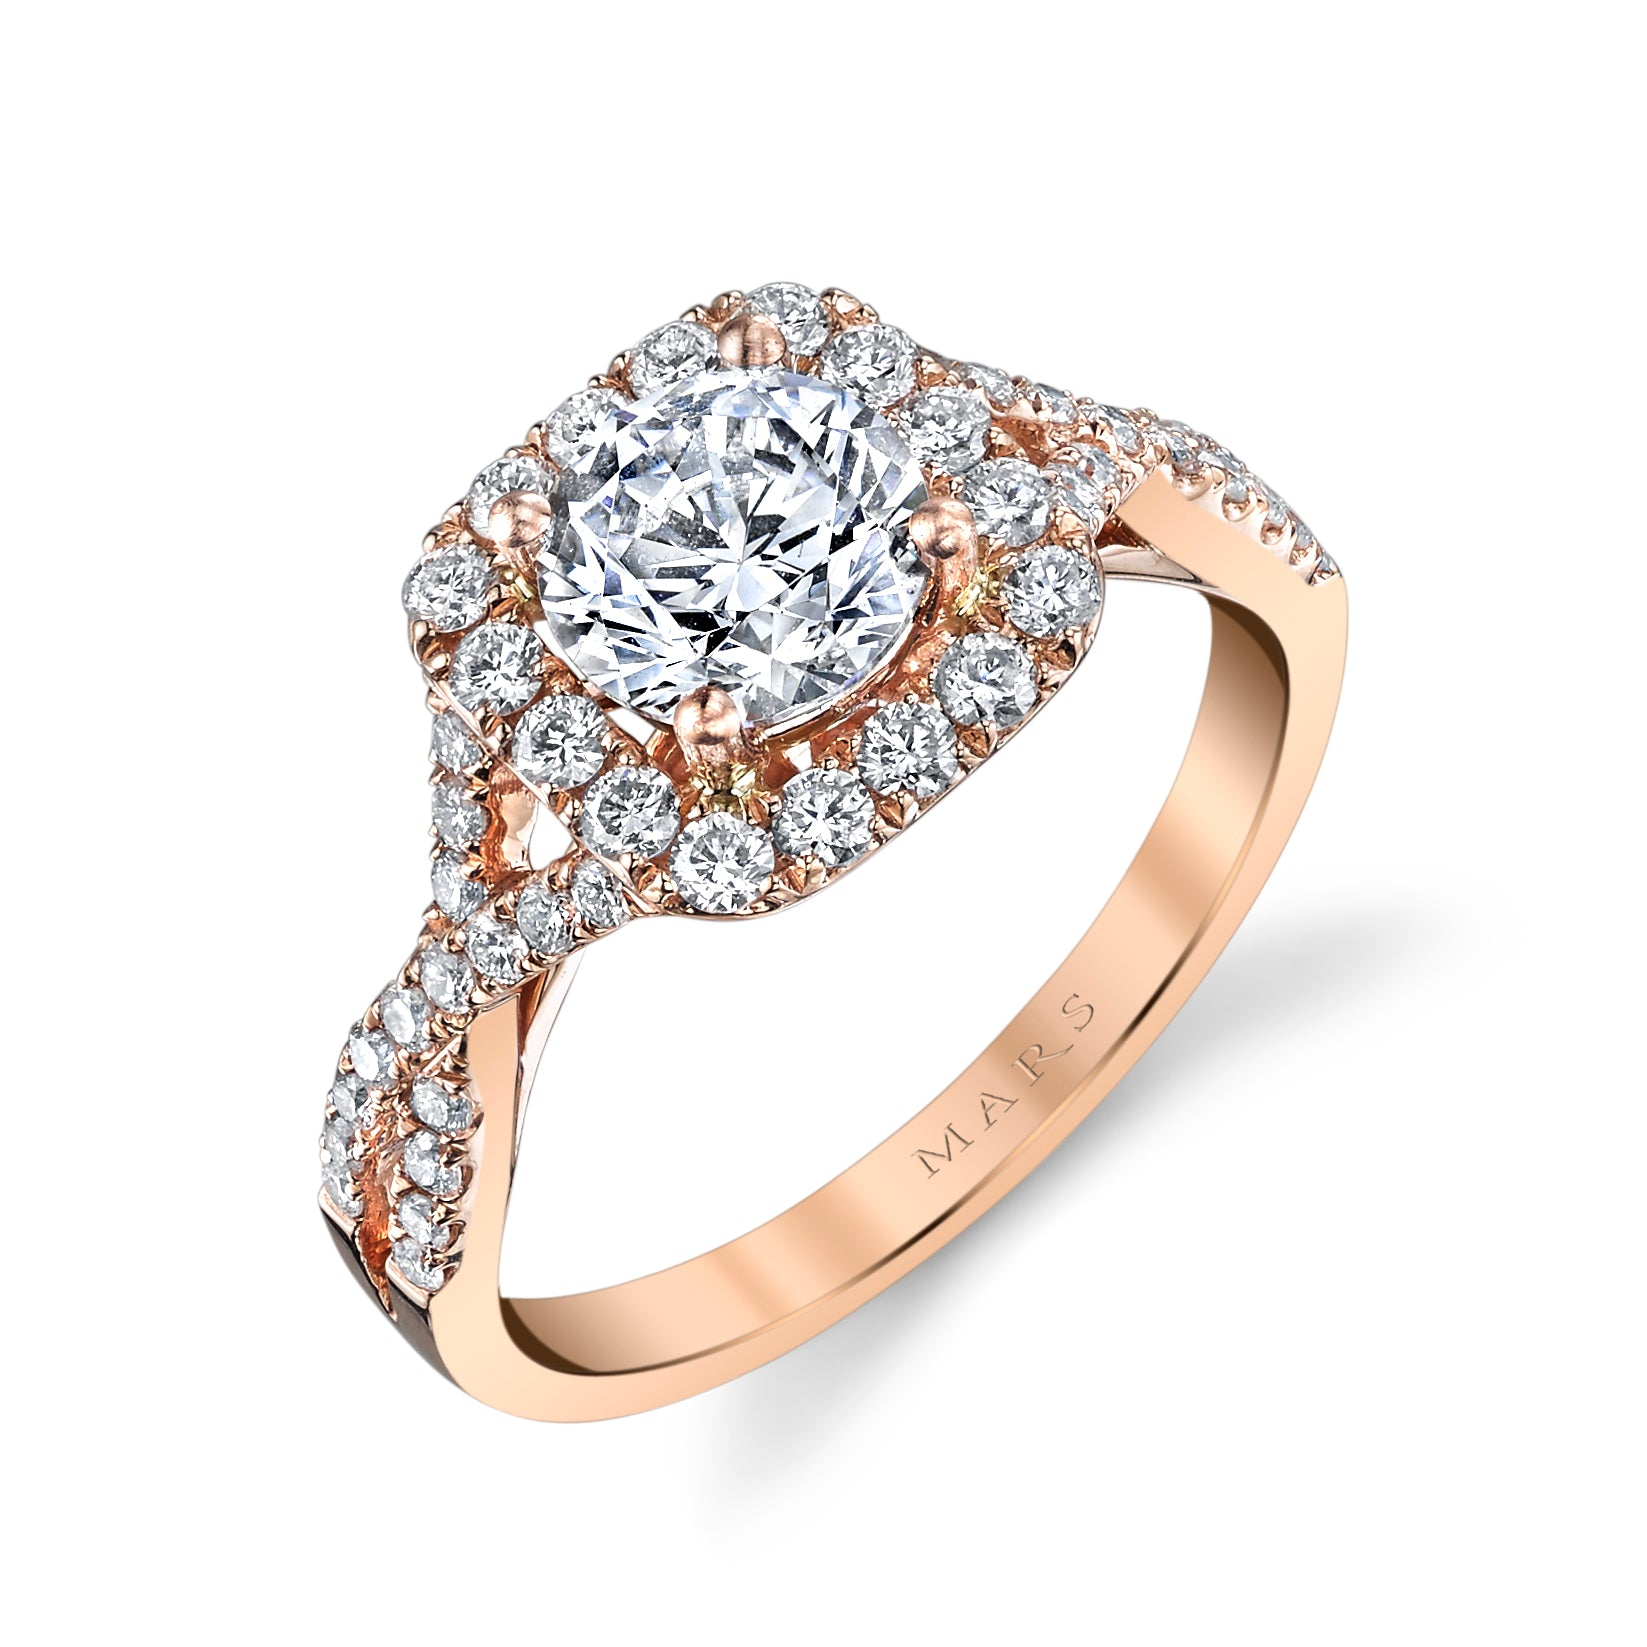 Mars Bridal Jewelry 14K Rose Gold Engagement Ring w/ Interwoven Infinity Diamond Shank & Cushion Diamond Halo 25560